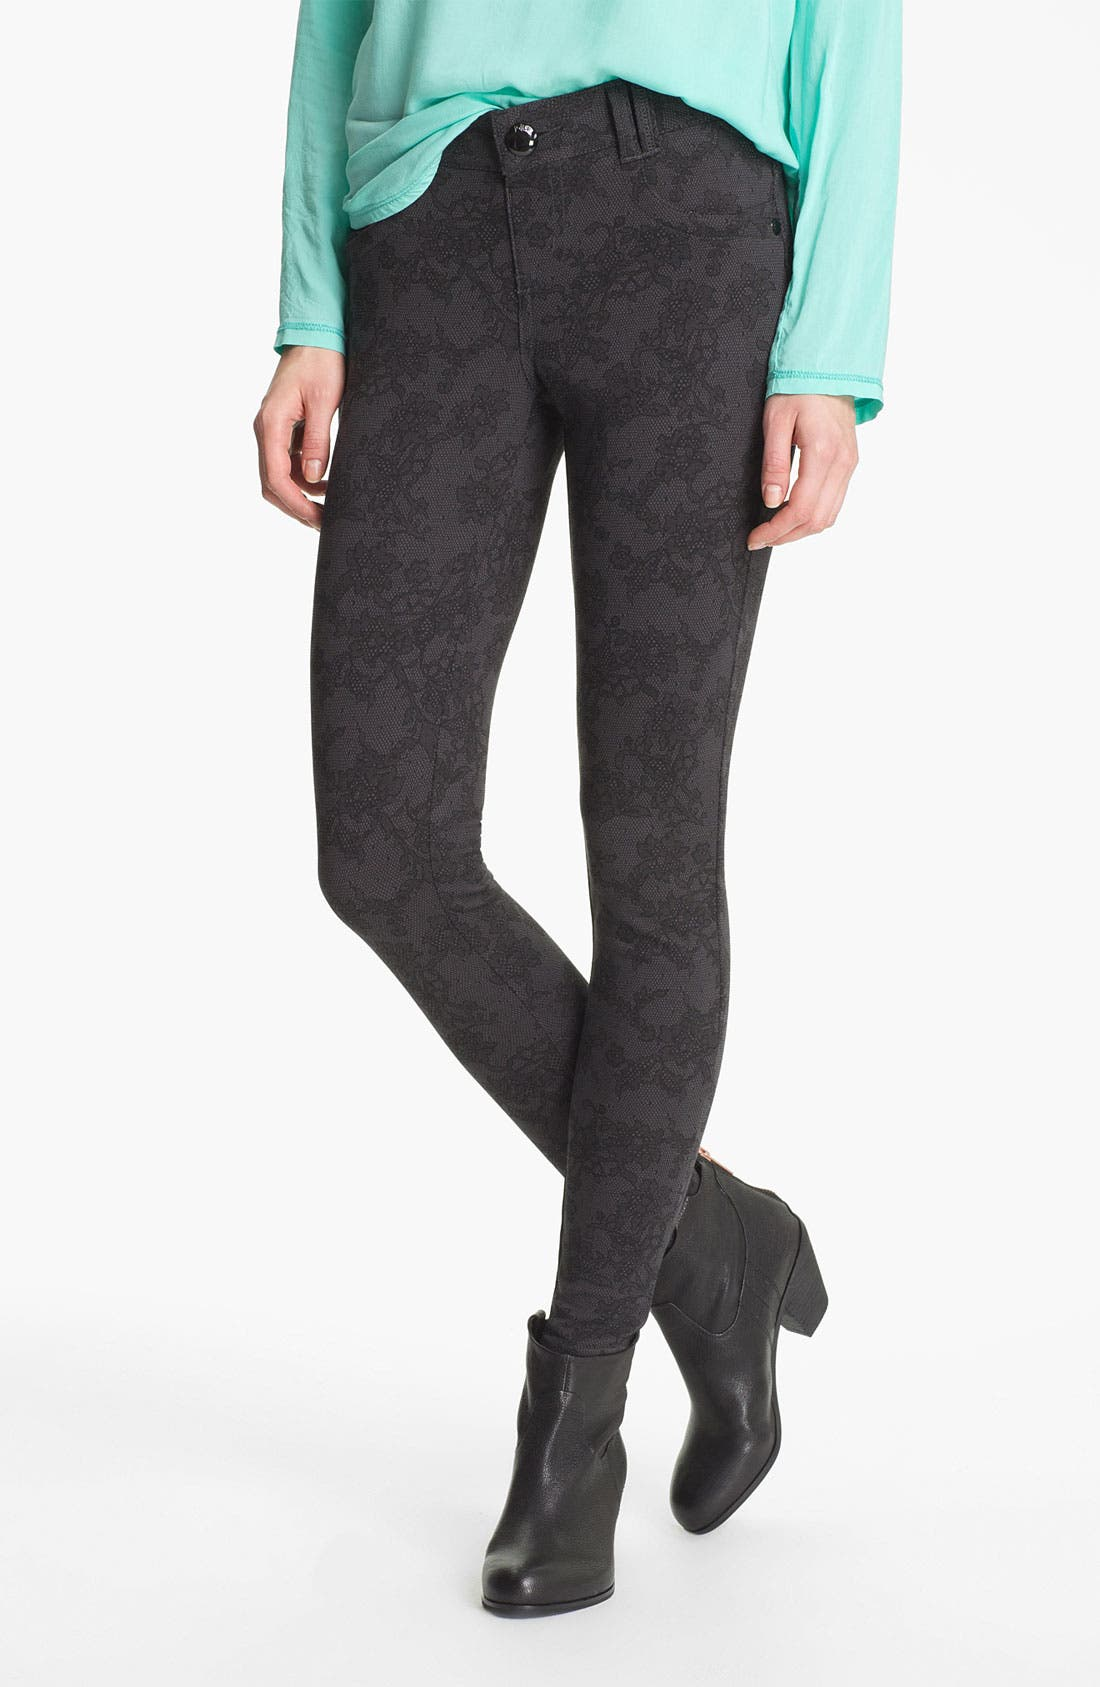 Alternate Image 1 Selected - Jolt Lace Print Ponte Skinny Pants (Juniors)